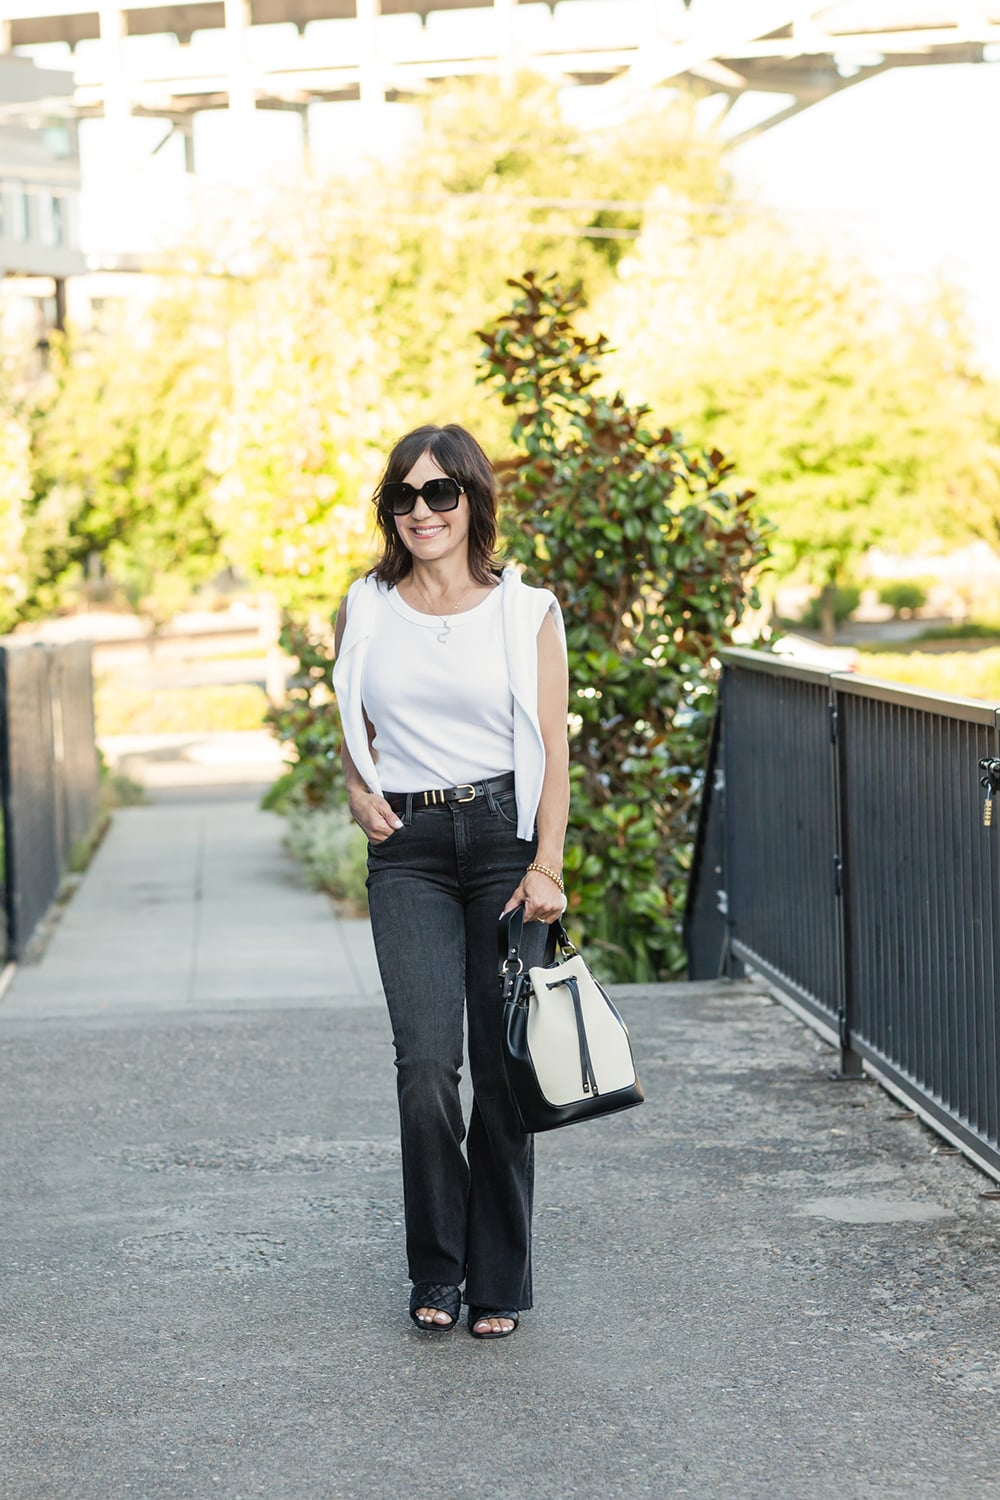 susie wright in black jeans and white tee